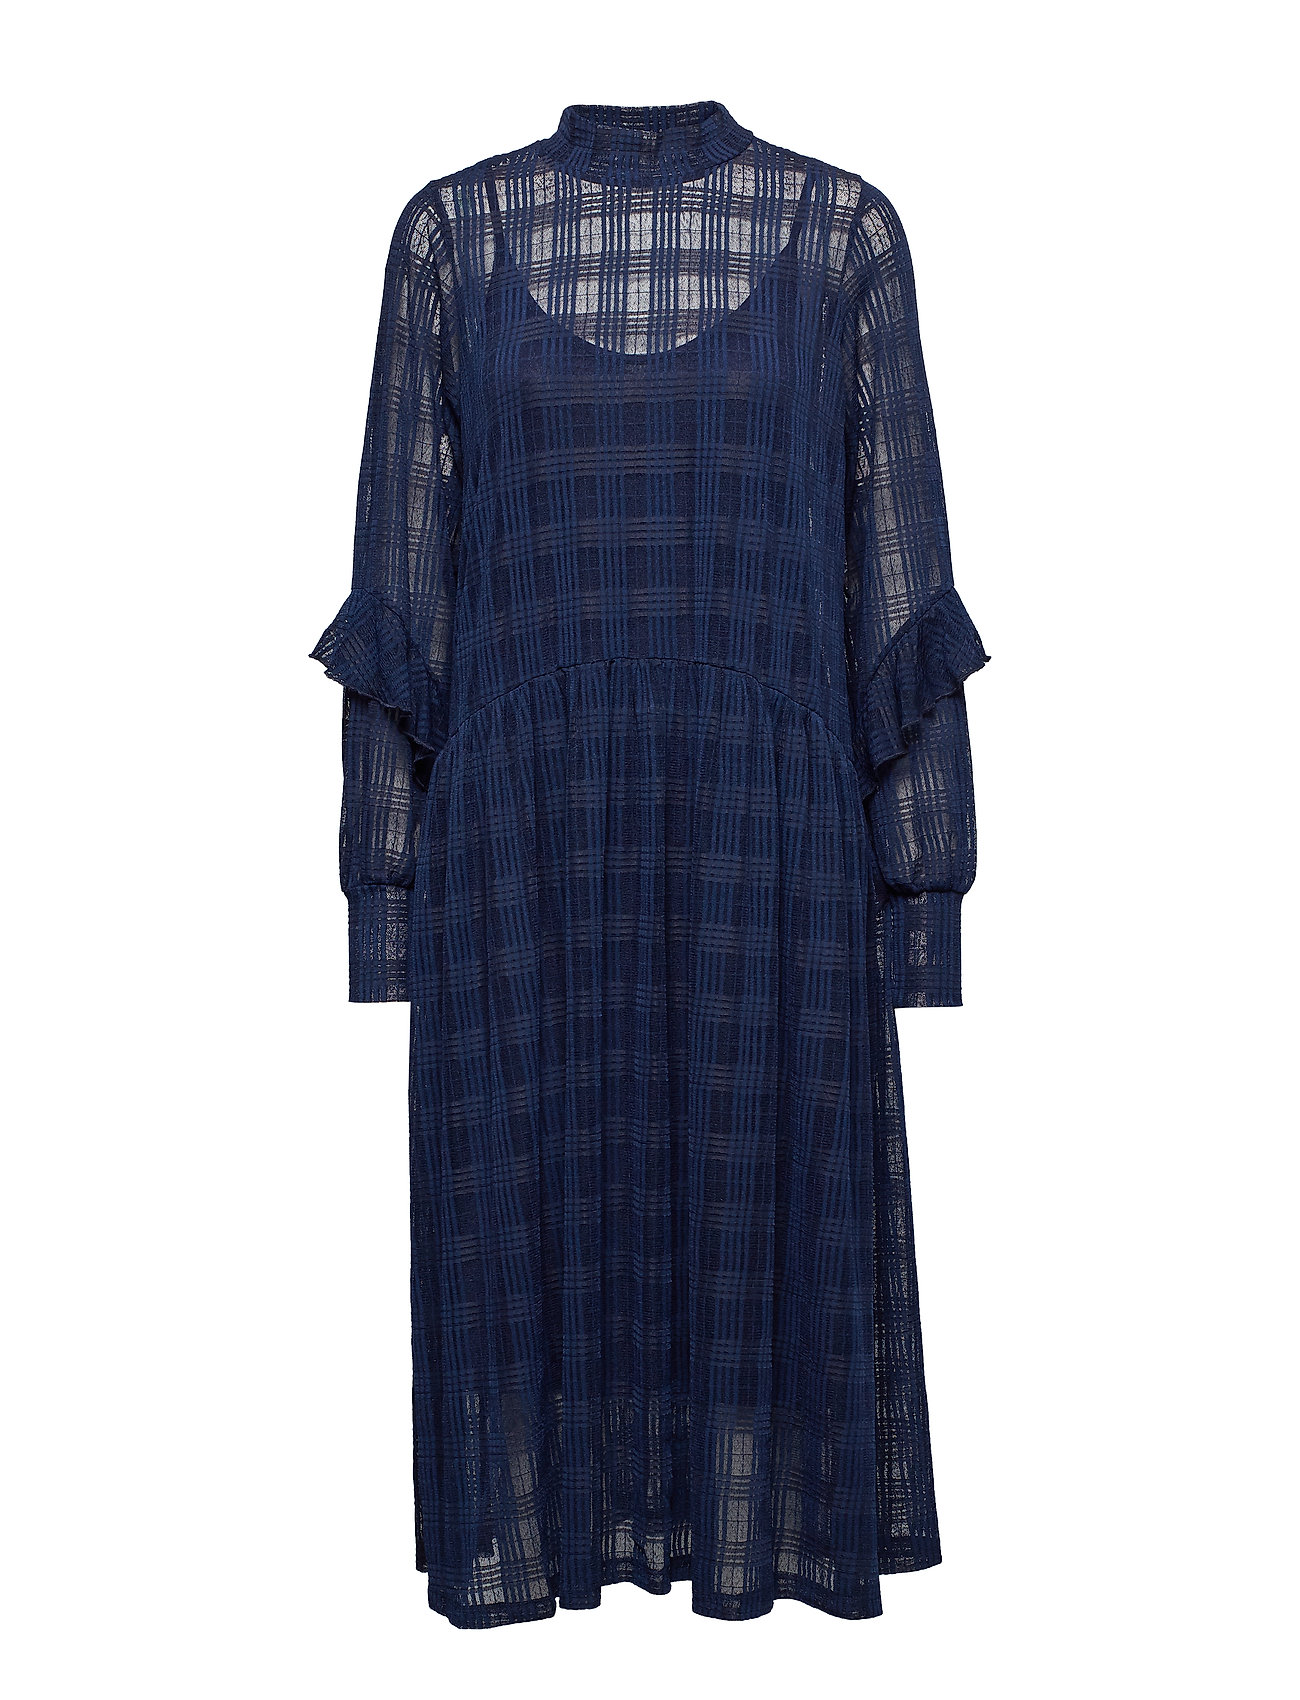 Soft Rebels Pam Ruffel Dress - NIGHT SKY